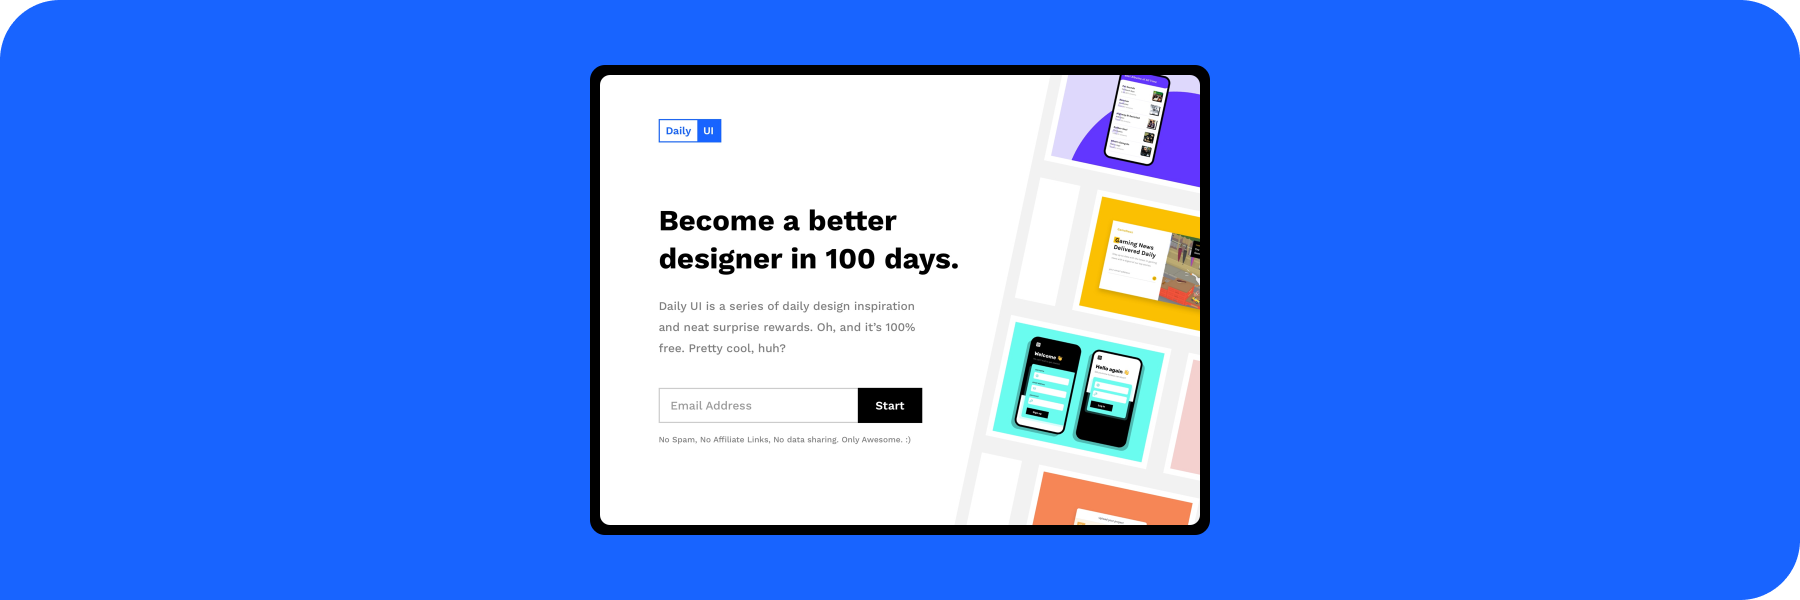 The final product of my 100 day challenge, a landing page for Daily UI